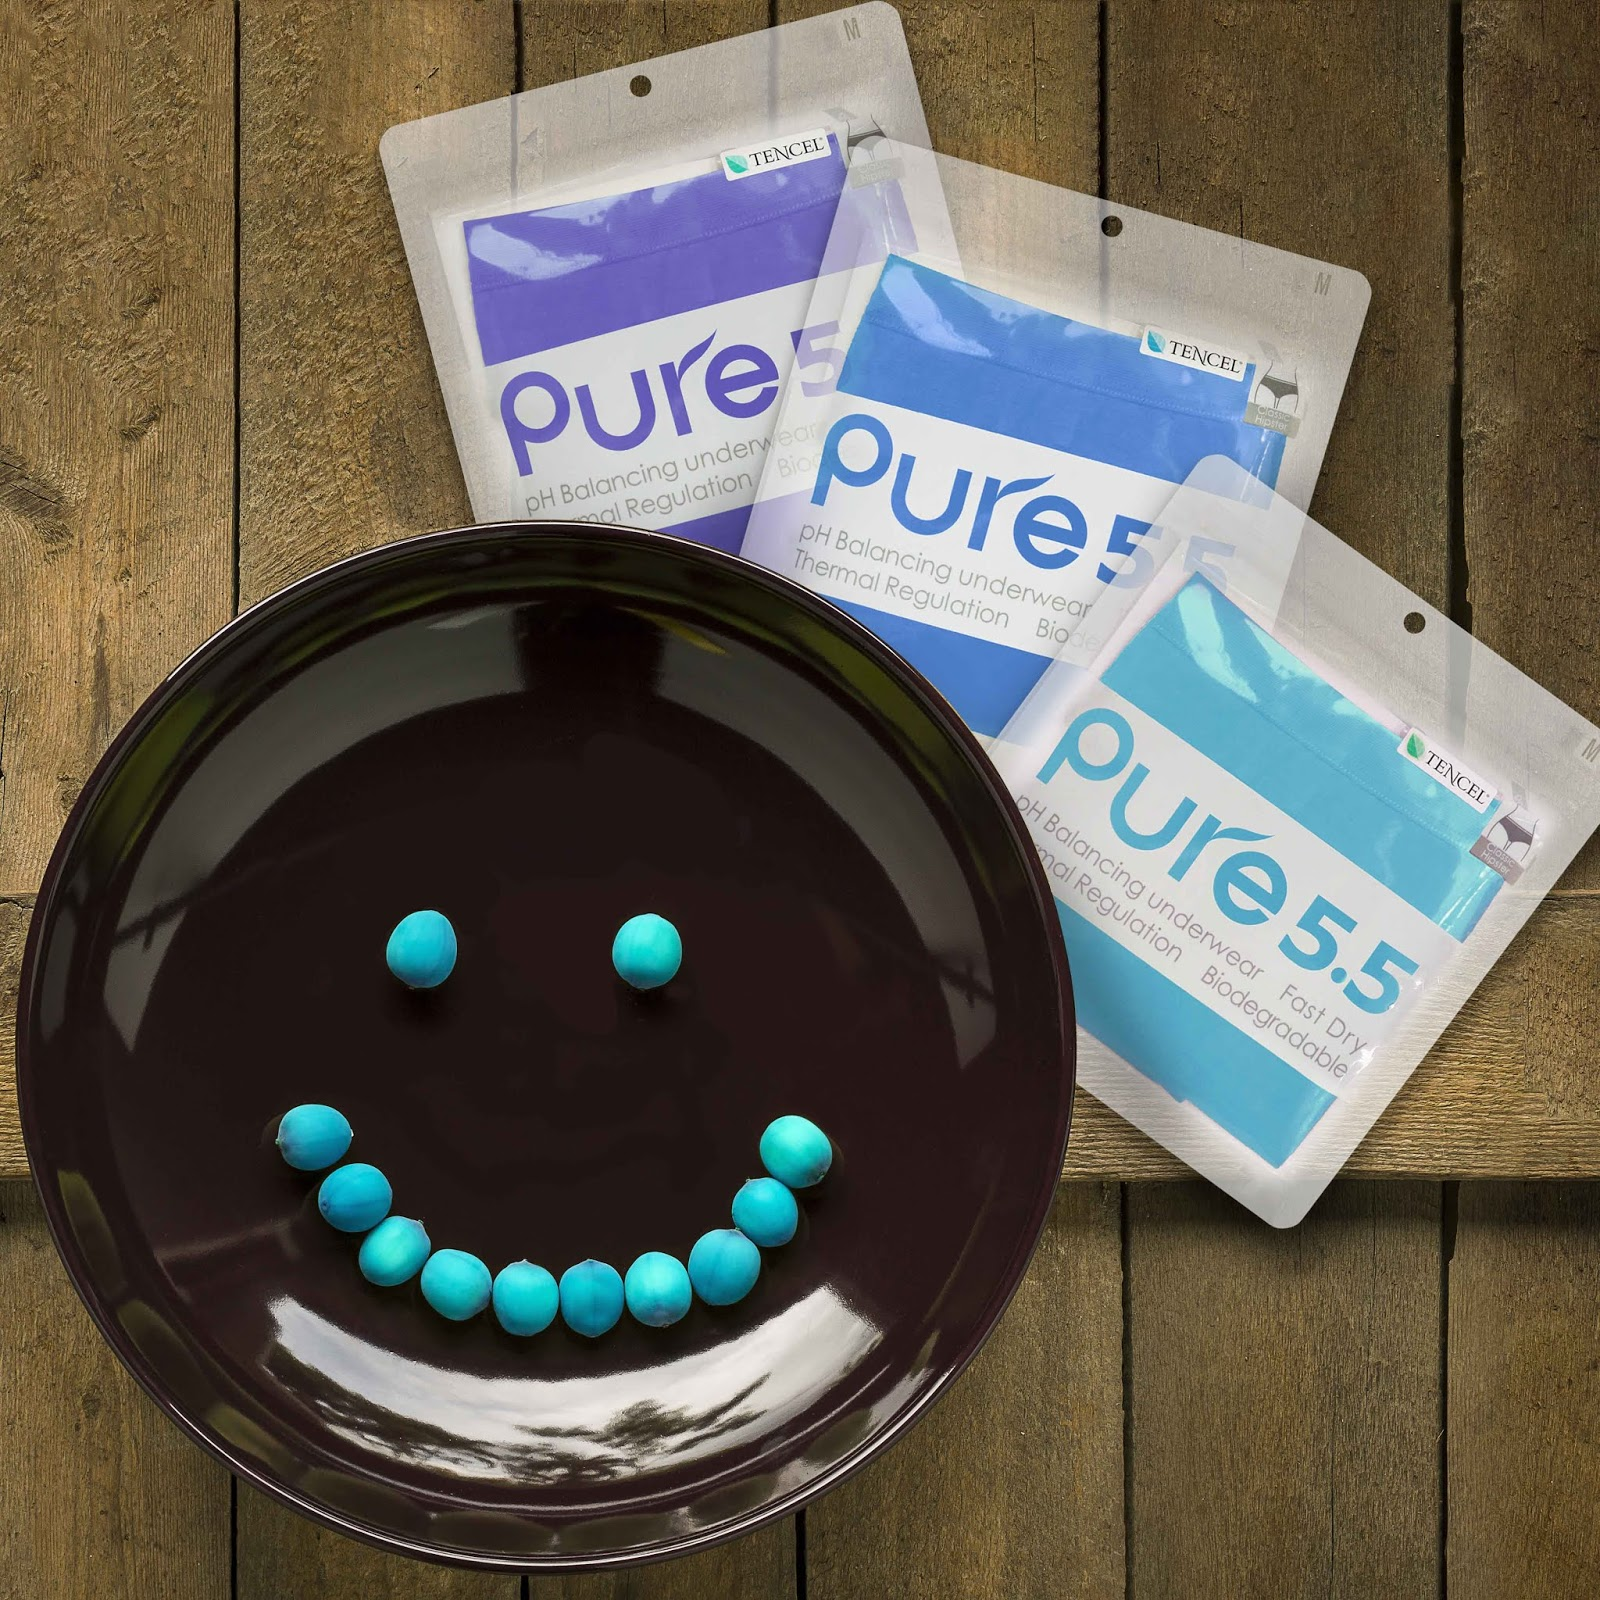 aPure Pure55 pH Balancing Underwear - Bye Bye, 7-Year Itch!